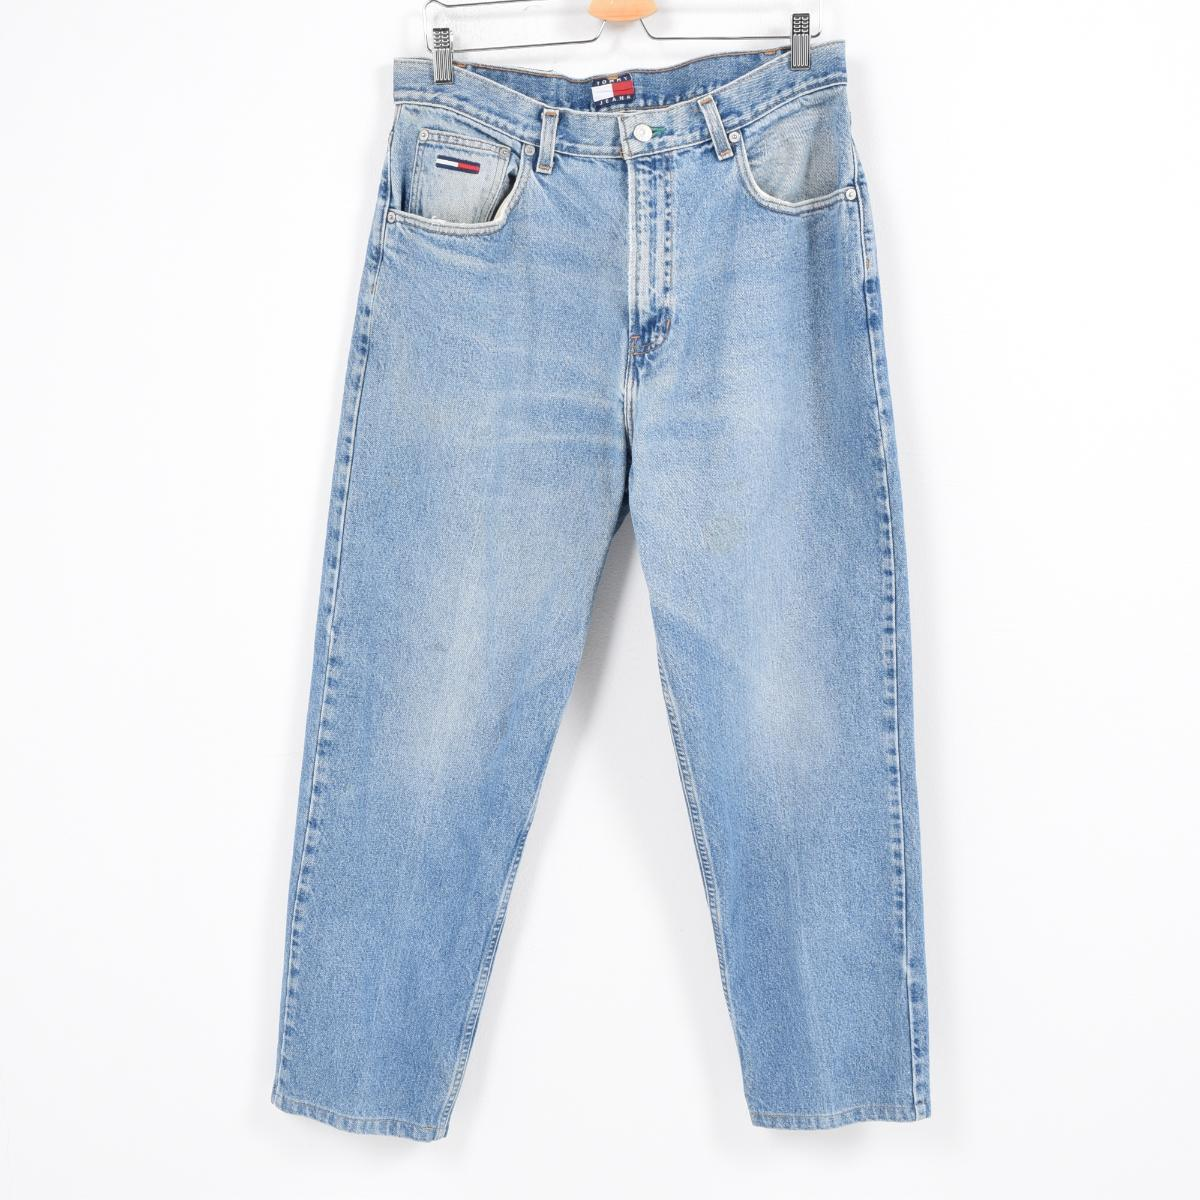 f9bc6564 Men w36 /wal8379 in the 90s made in トミーヒルフィガー TOMMY HILFIGER JEANS jeans  denim ...